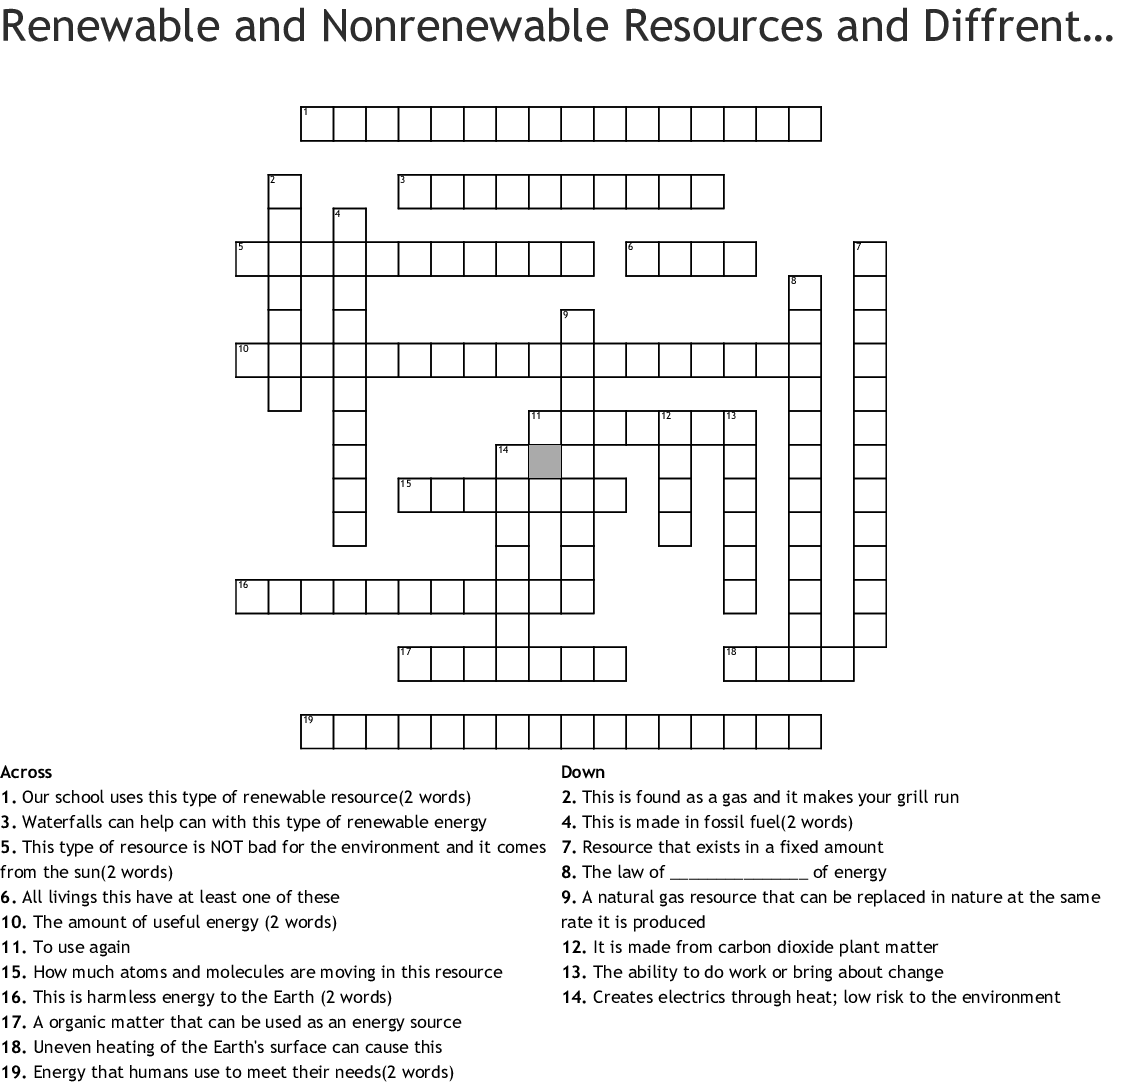 Renewable And Nonrenewable Resources And Diffrent Types Of